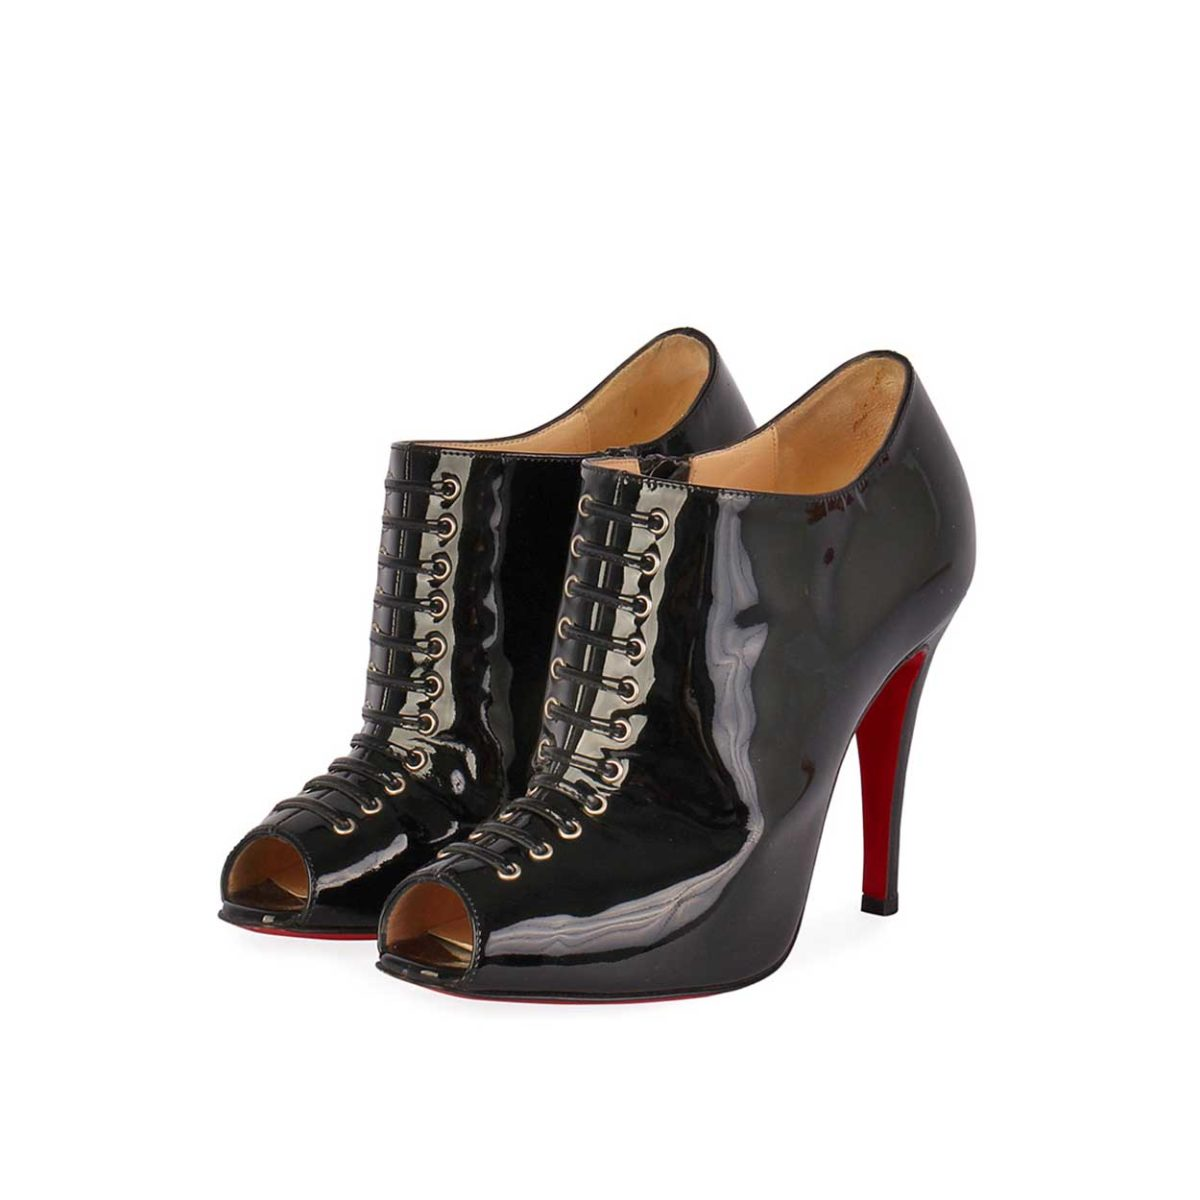 4758241d886 CHRISTIAN LOUBOUTIN Patent Corsita 100 Lace-Up Booties Black – S: 36.5 (3.5)